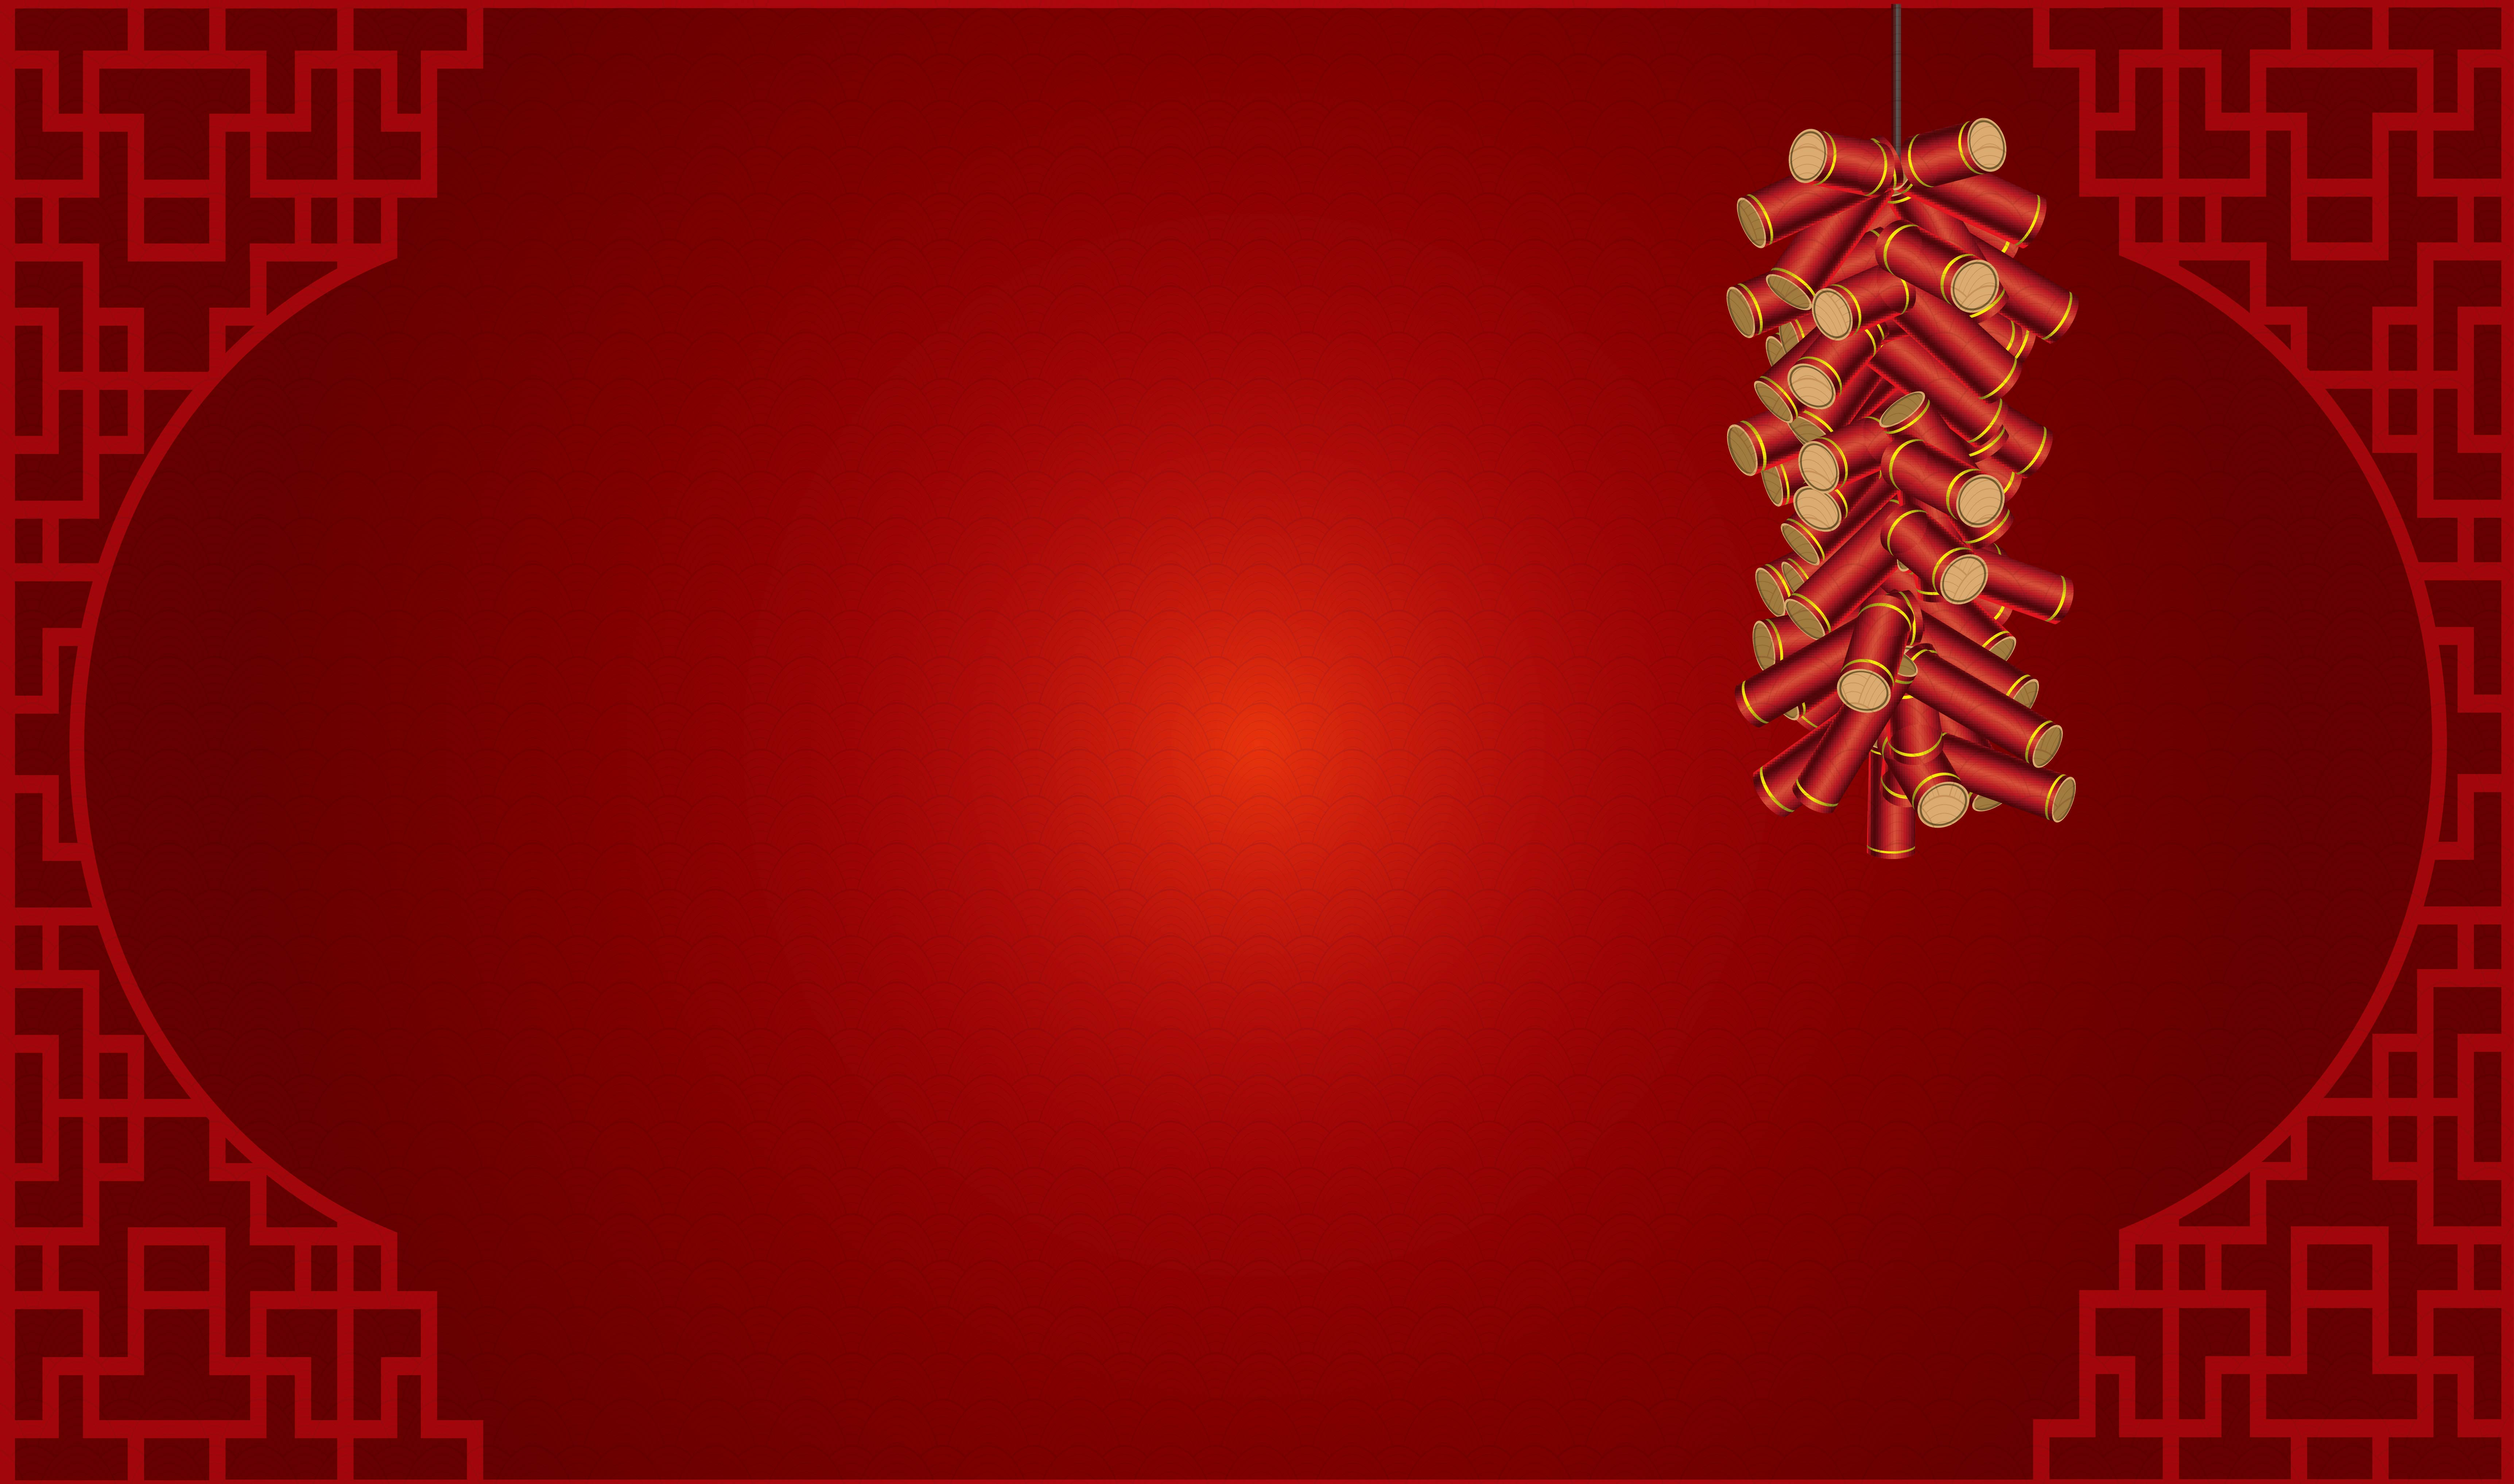 red chinese new year firecrackers wind vector background